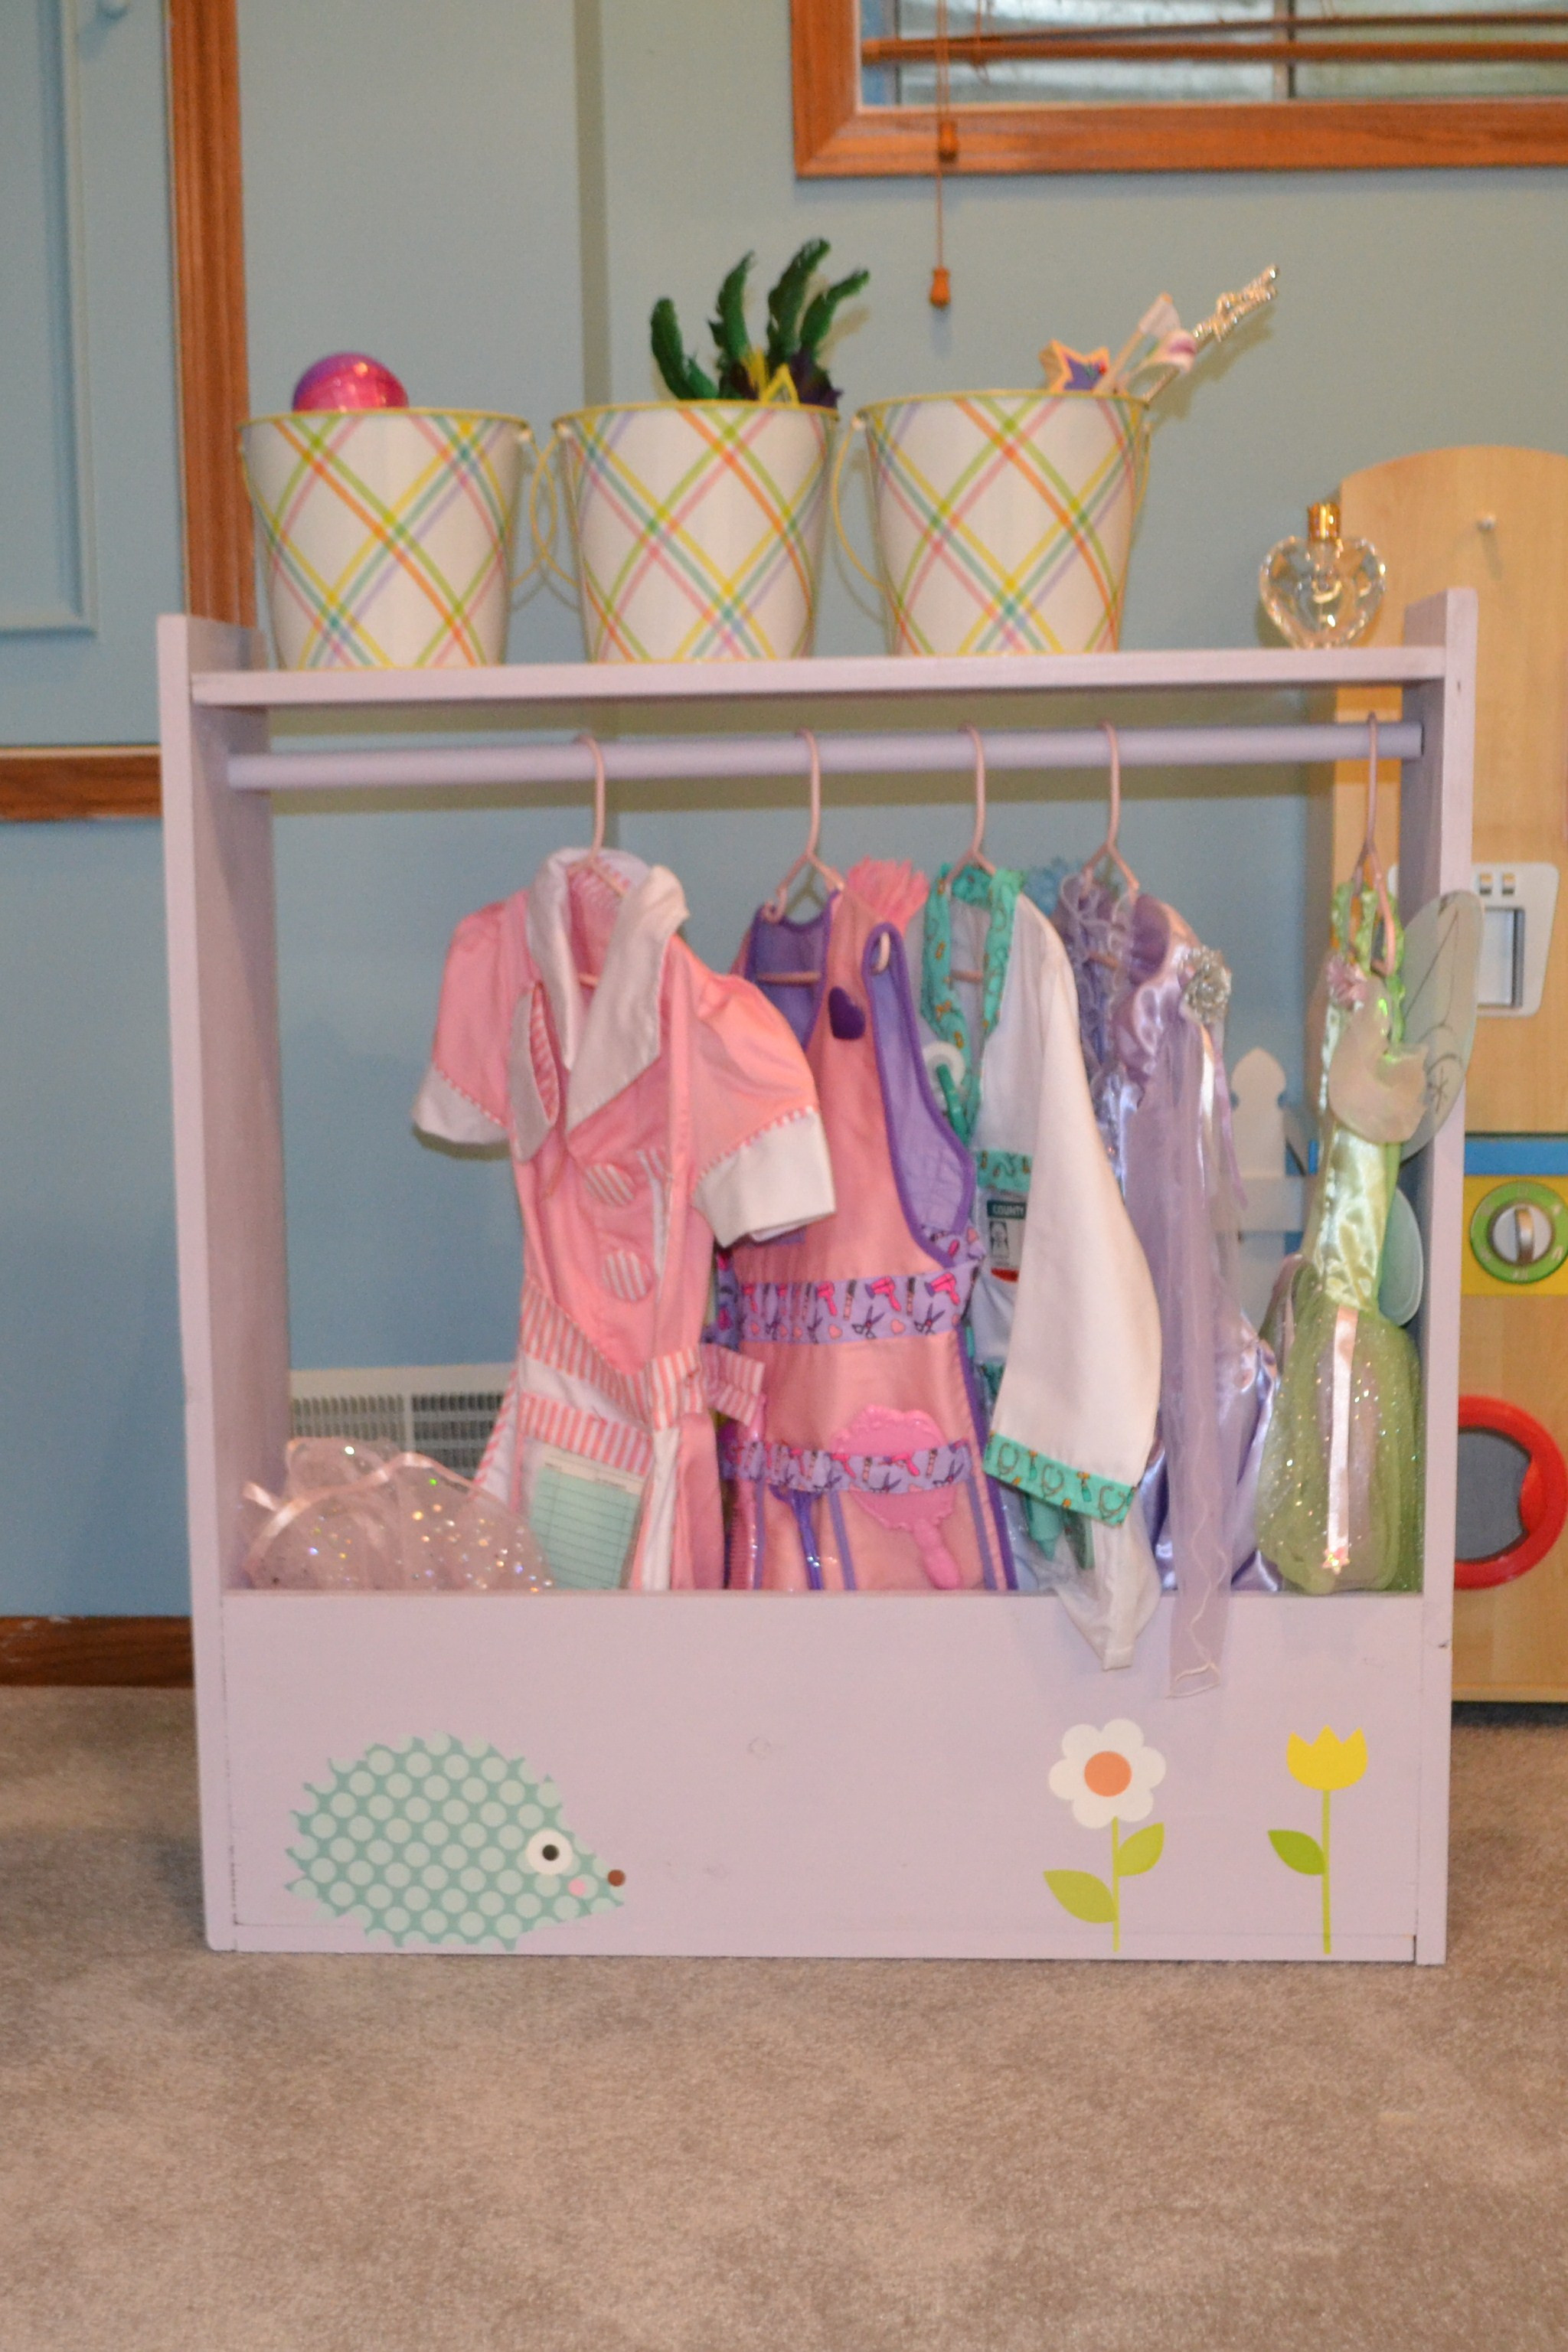 Best ideas about DIY Dress Up Storage . Save or Pin Ana White Now.